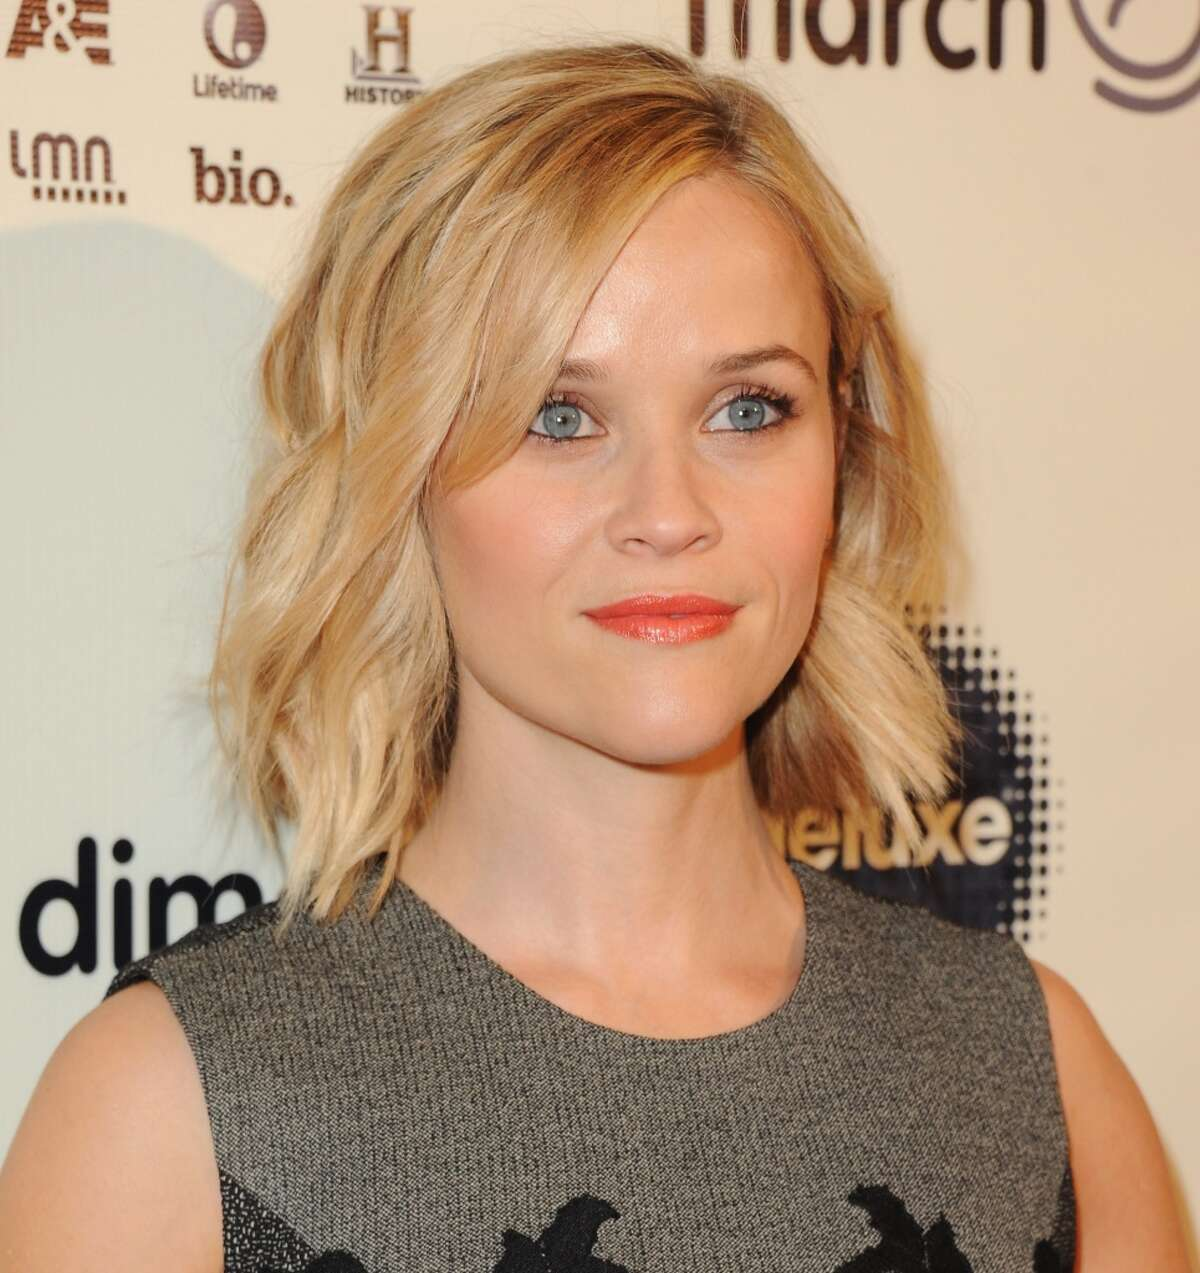 No. 3 most overpaid actor of 2013: Reese Witherspoon